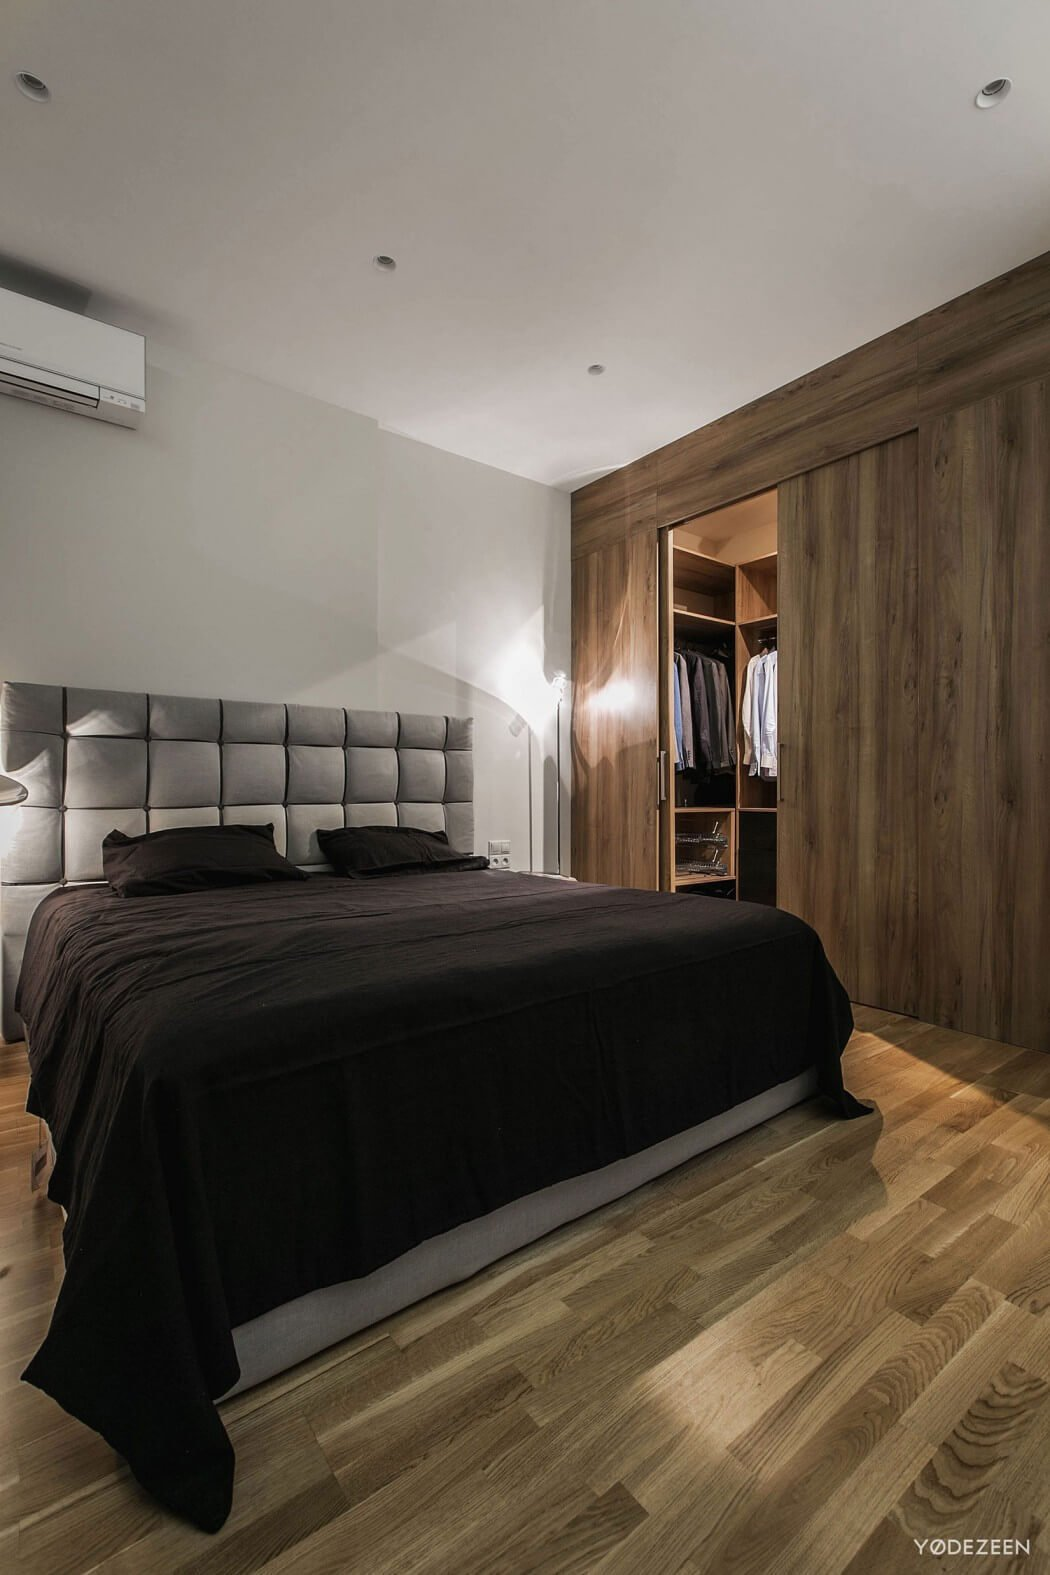 012-apartment-kiev-yodezeen-1050x1575